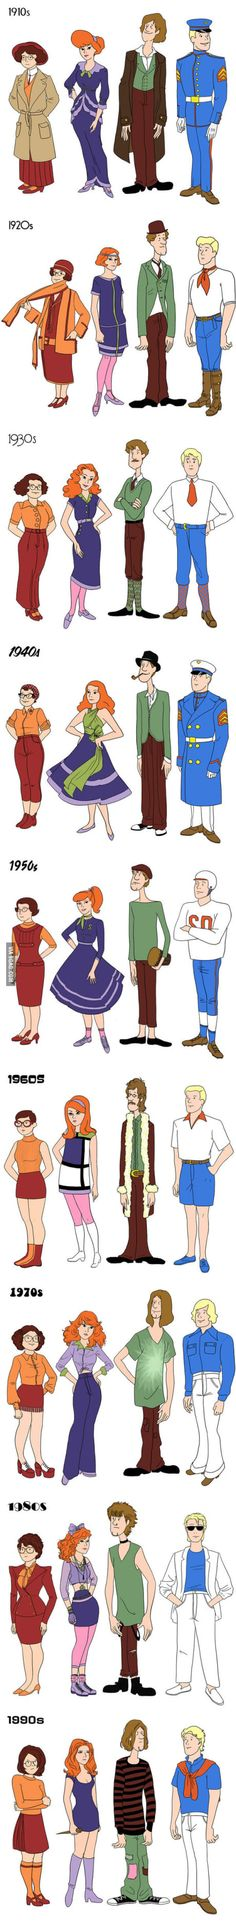 How the Scooby Doo Crew Would've Dressed Through the 20th Century